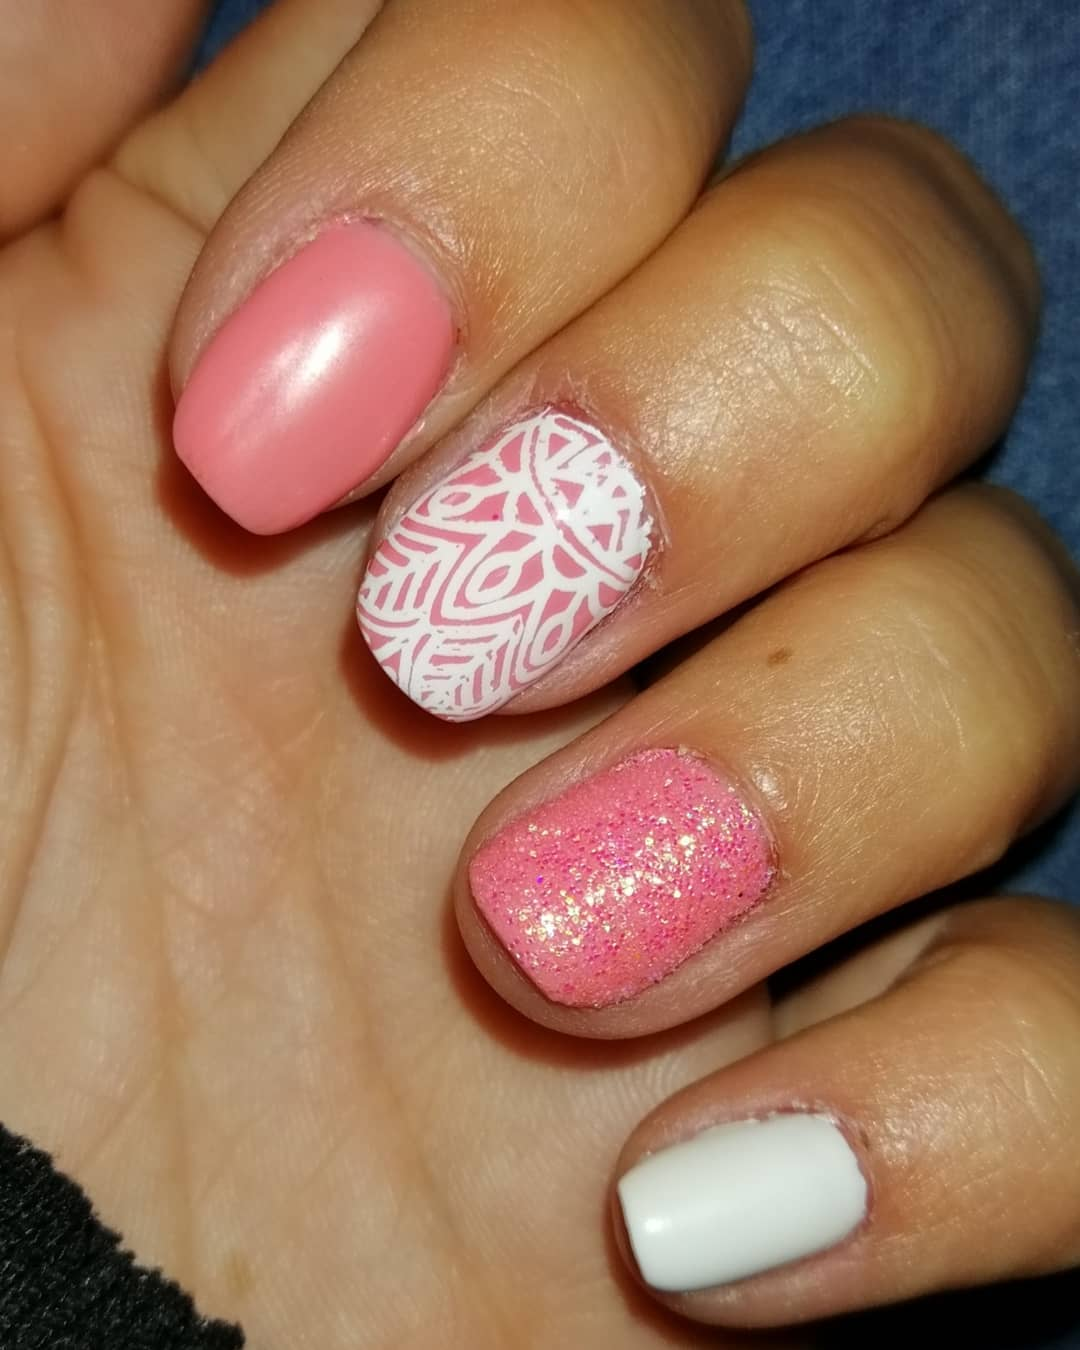 Shimmery Pink Nails with White Amazing Nail Art Design